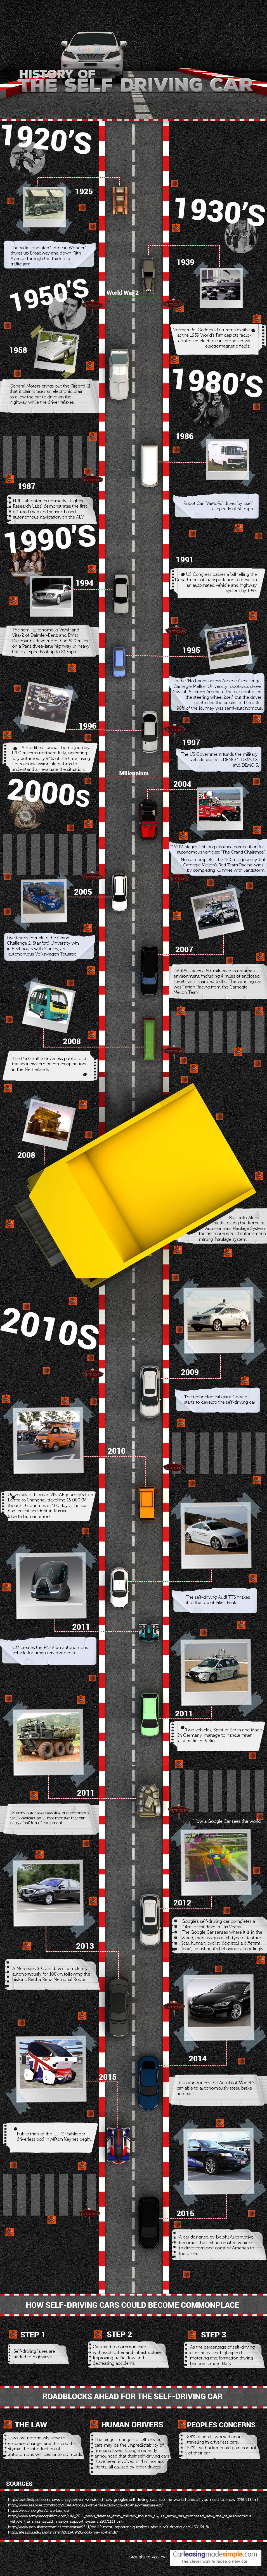 History of the Self Driving Car